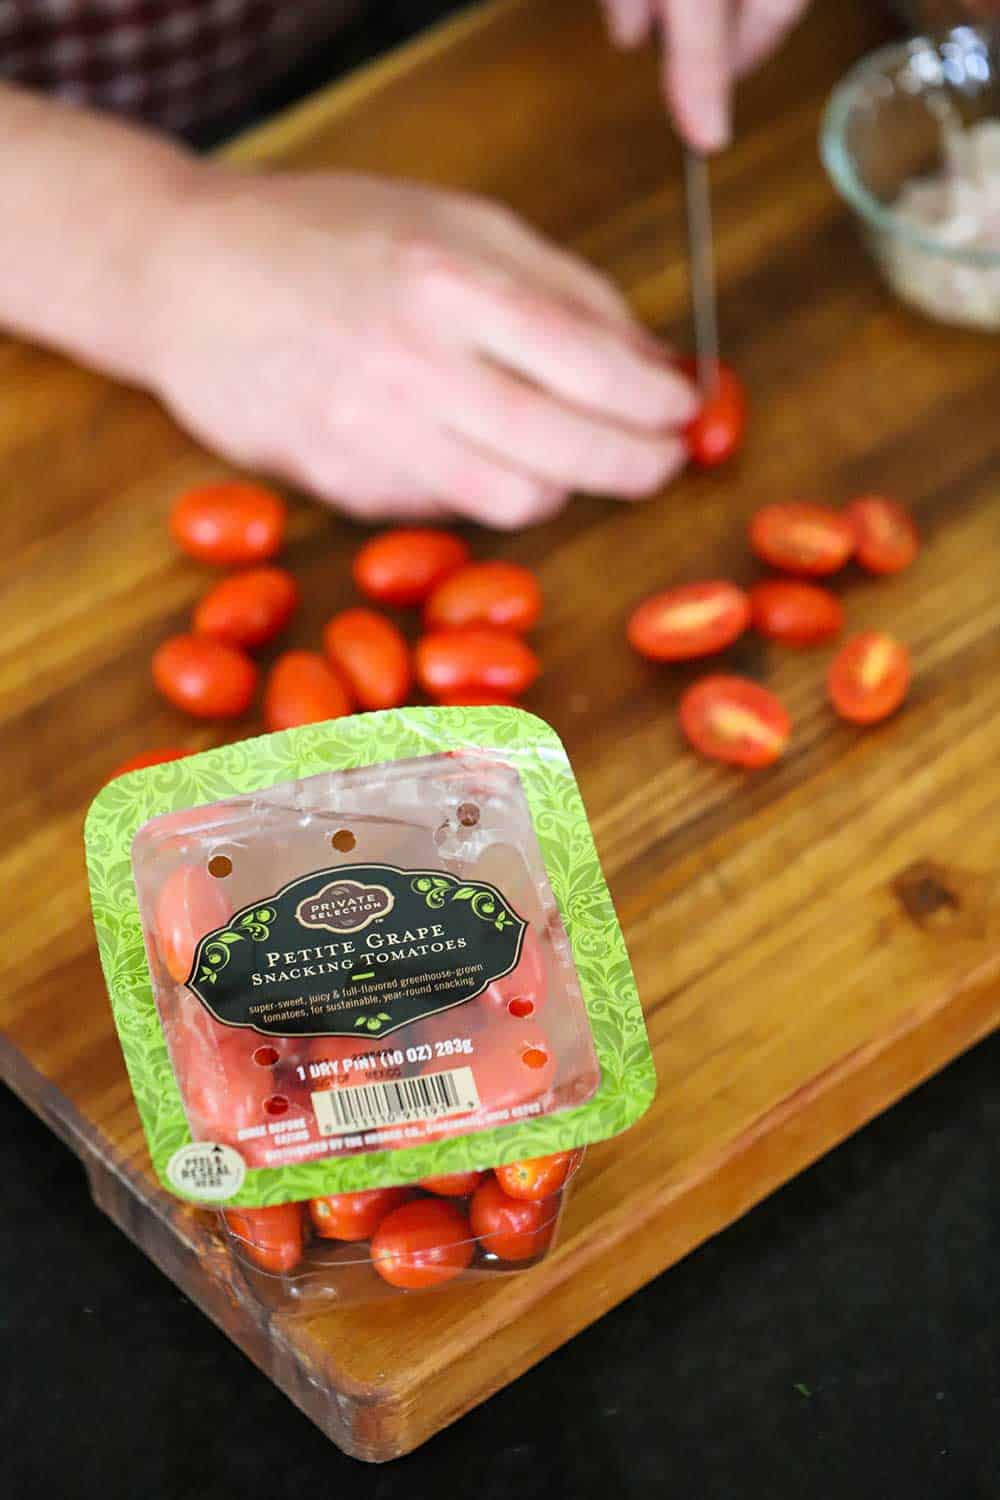 A person using a small knife to slice grape tomatoes in half on a cutting board in front of a package of the tomatoes.